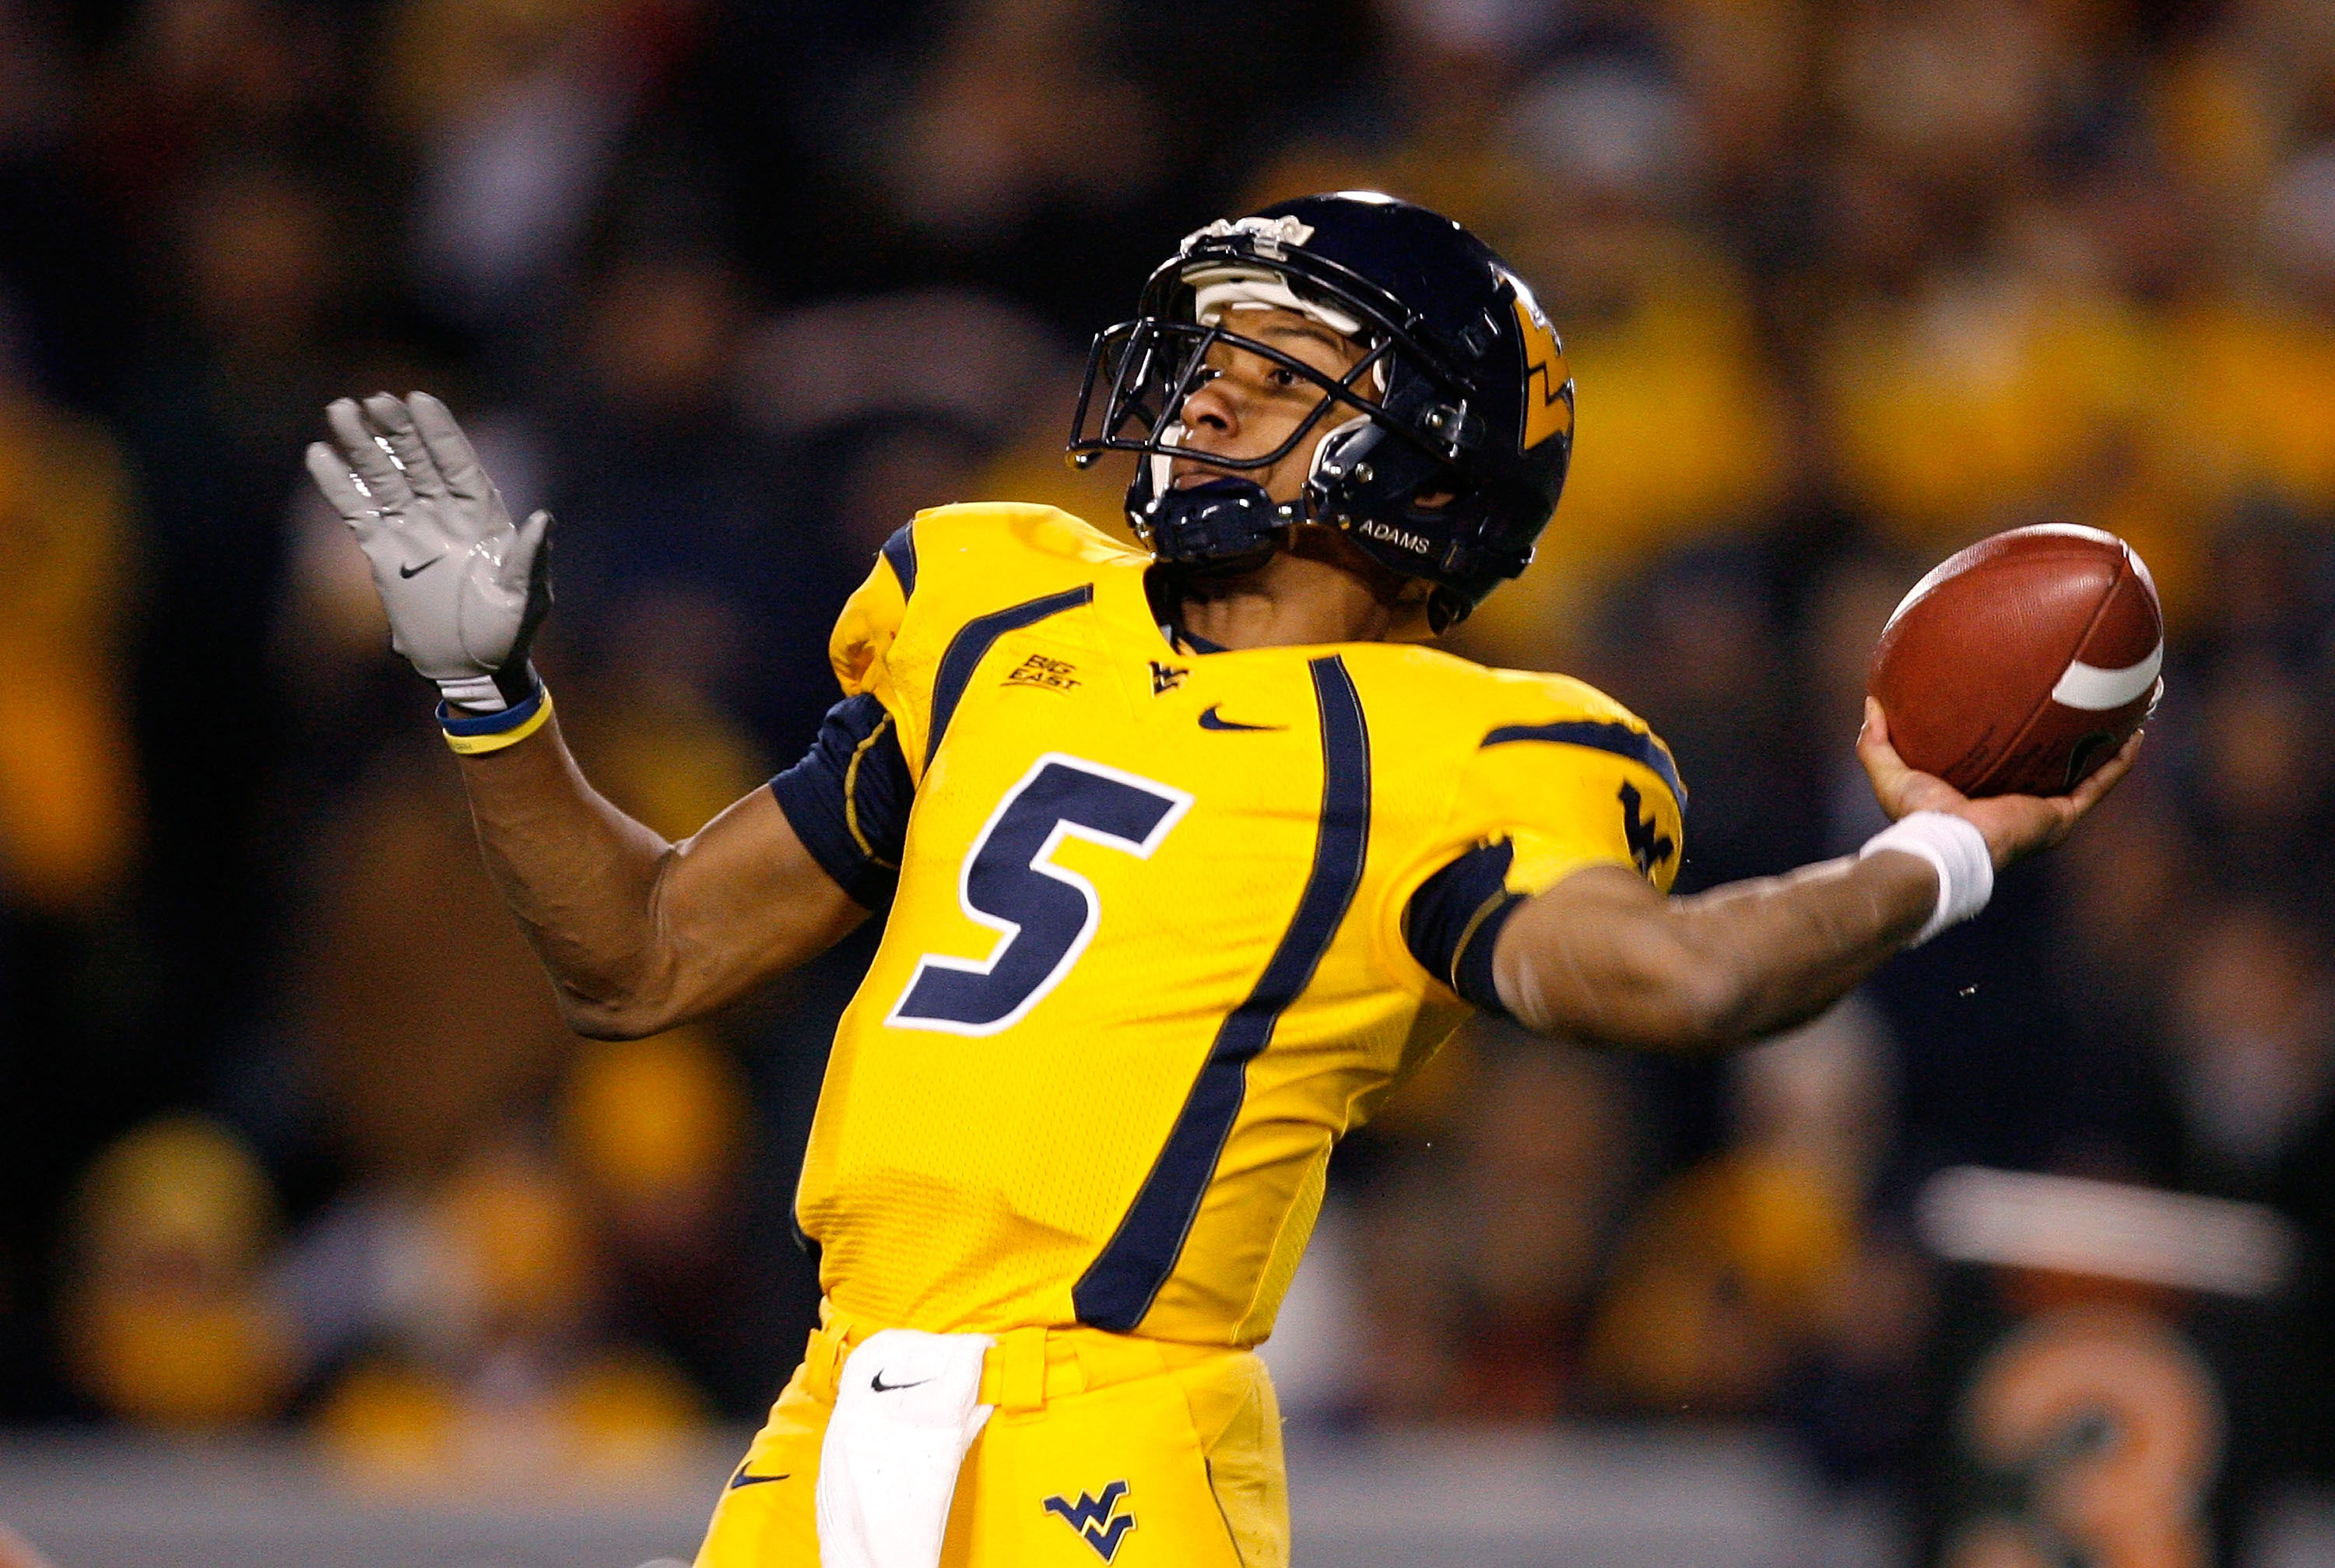 MORGANTOWN, WV - DECEMBER 1:  Quarterback Patrick White #5 of the West Virginia Mountaineers passes the ball before getting injured against the Pittsburgh Panthers during the first half at Milan Puskar Stadium December 1, 2007 in Morgantown, West Virginia